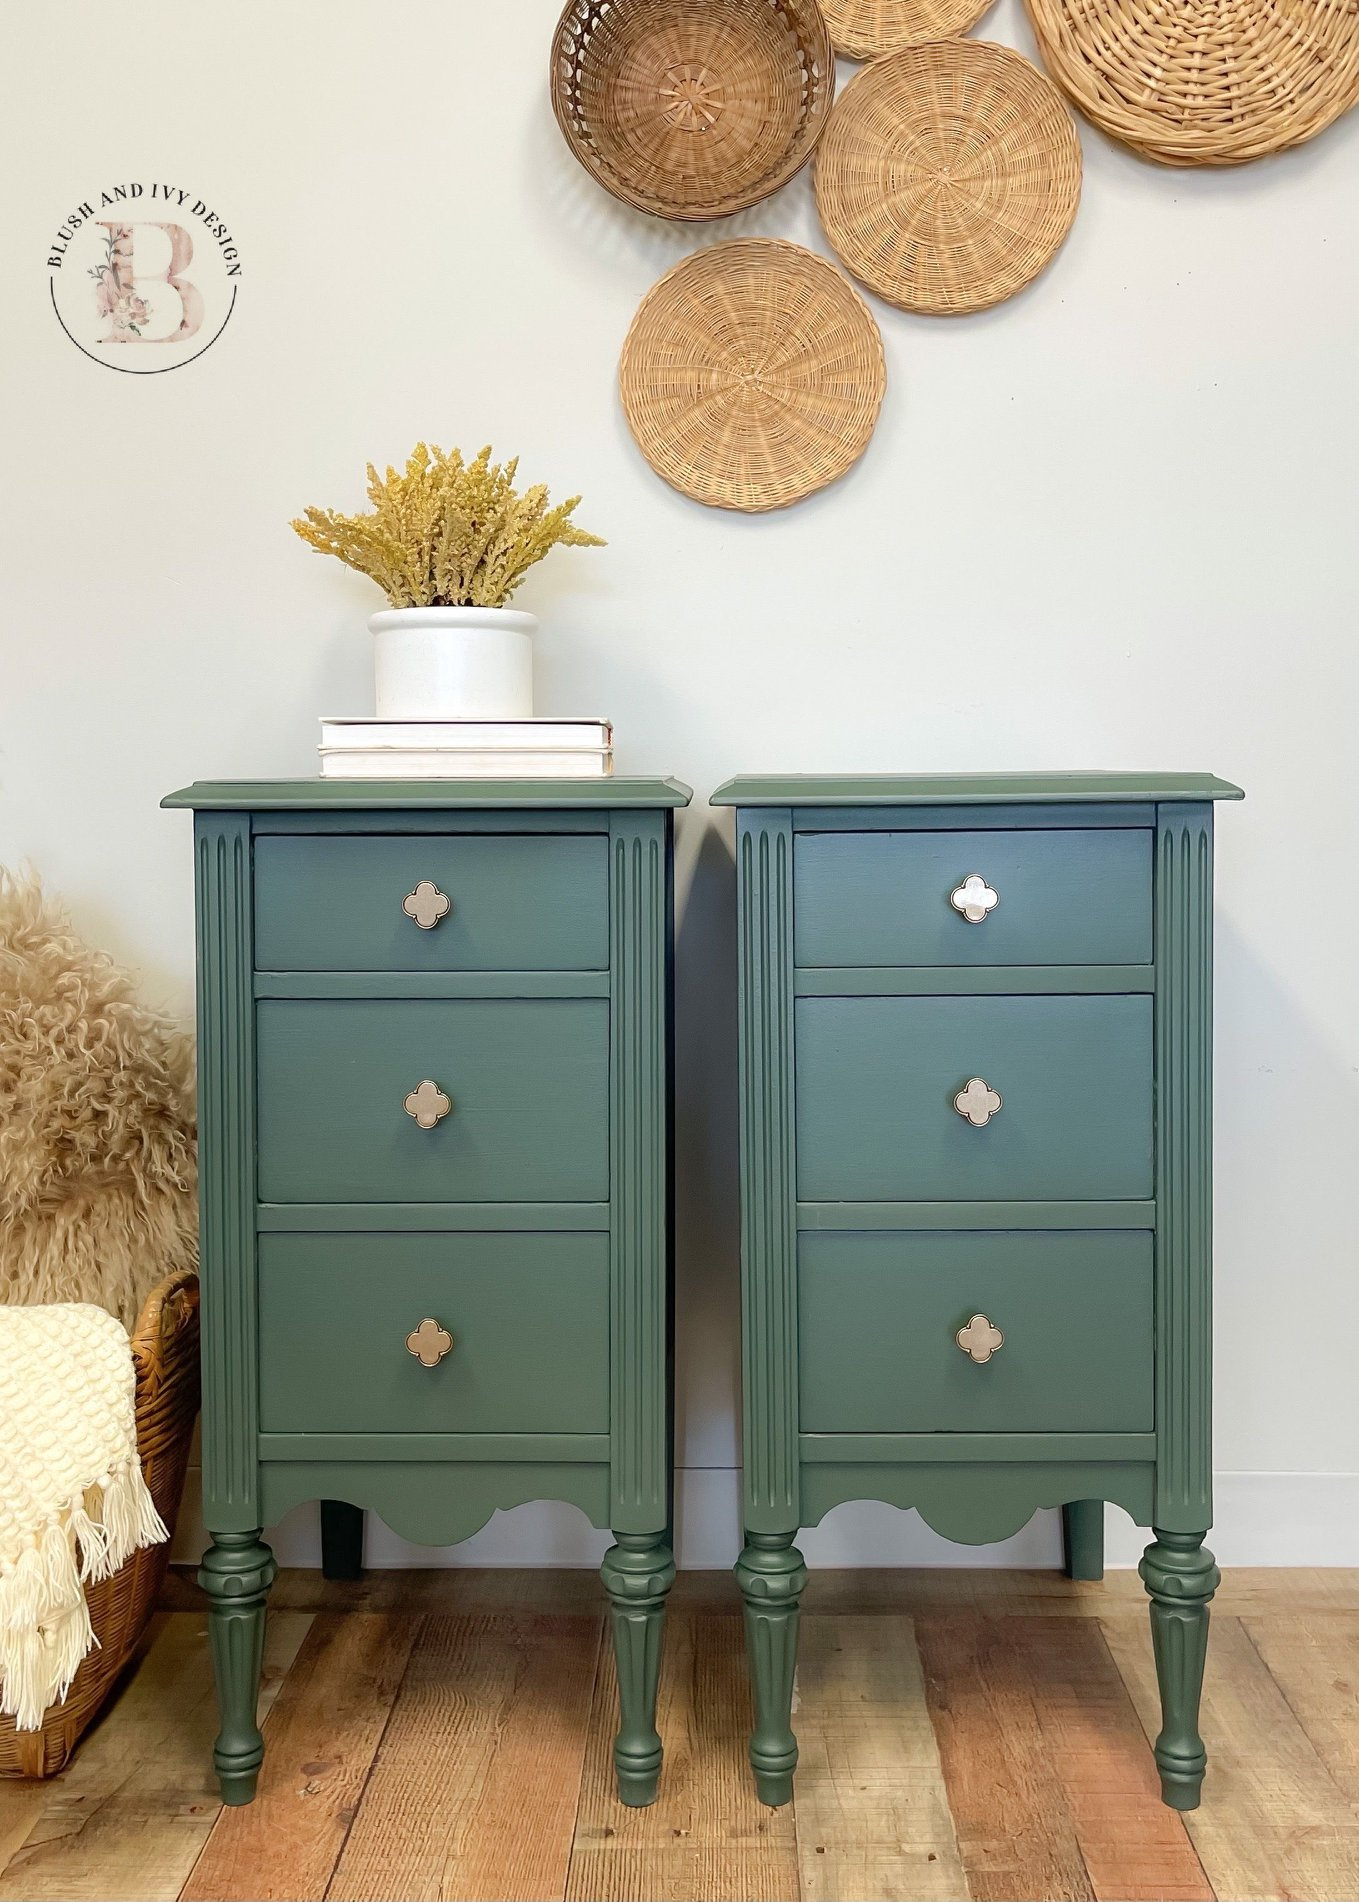 Decorative End Tables in Hollow Hill with white pitcher and wicker wall